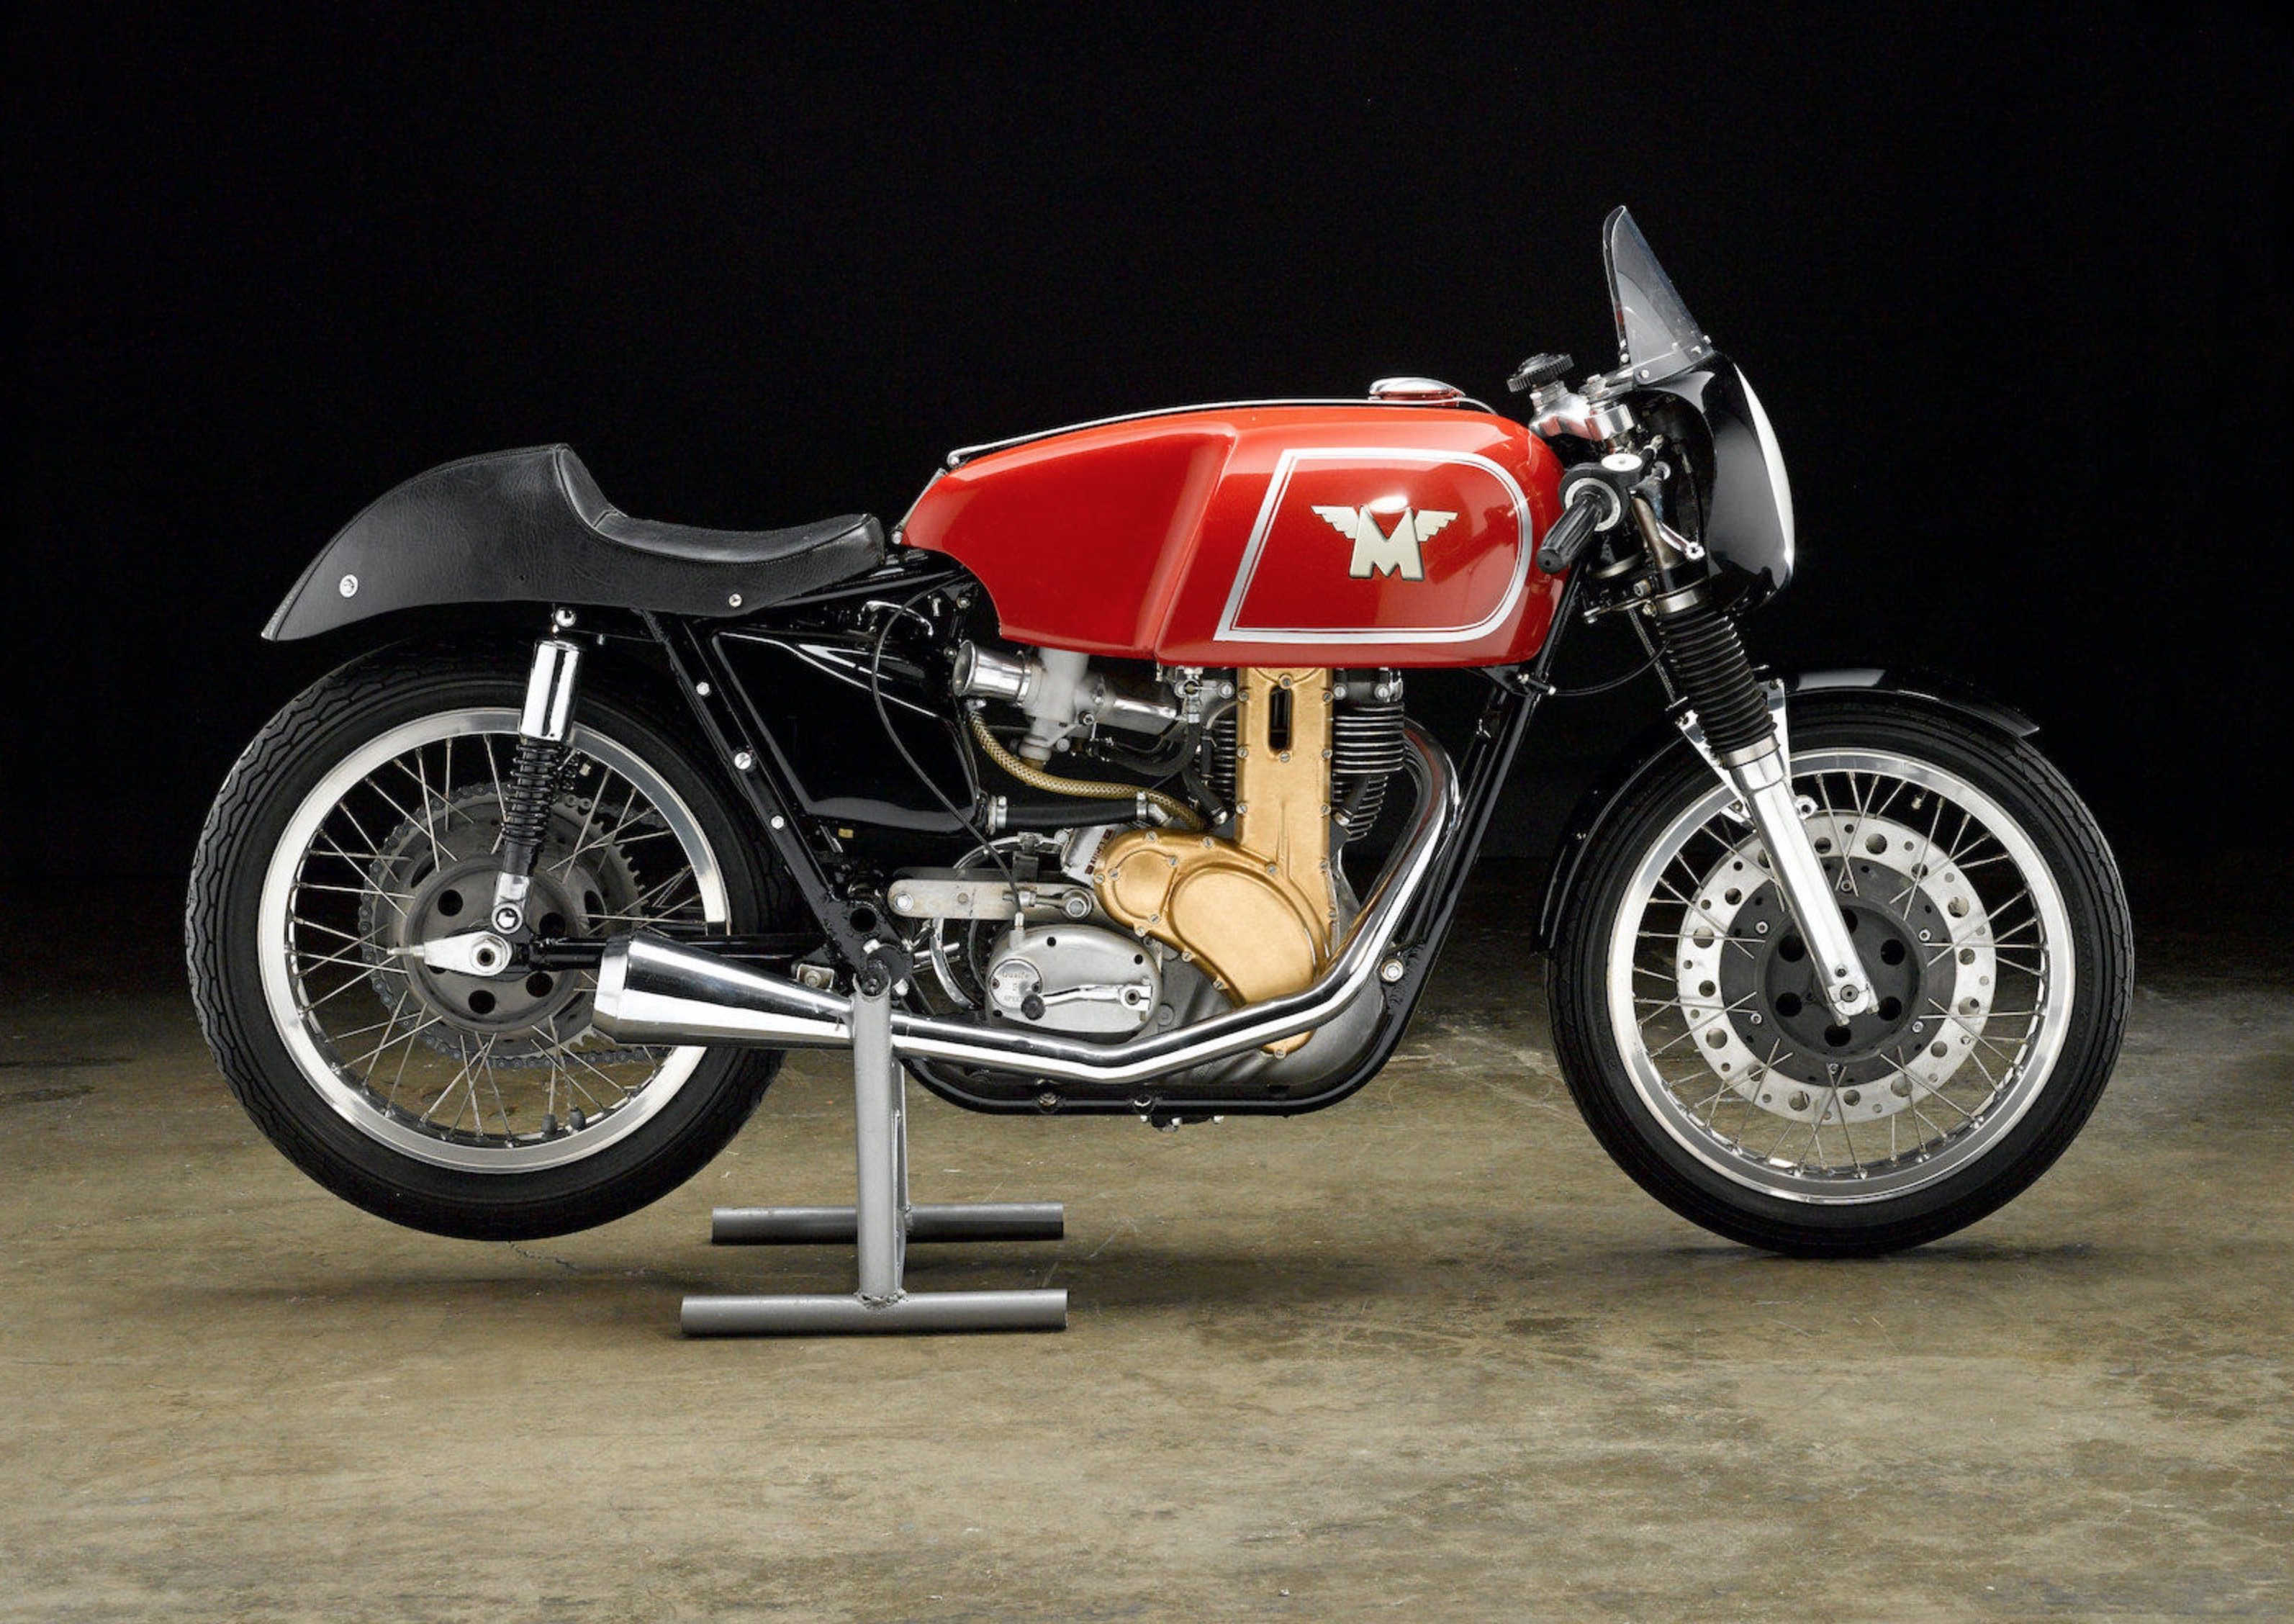 matchless g50 motorcycle racing silodrome competition directomotor little mayam